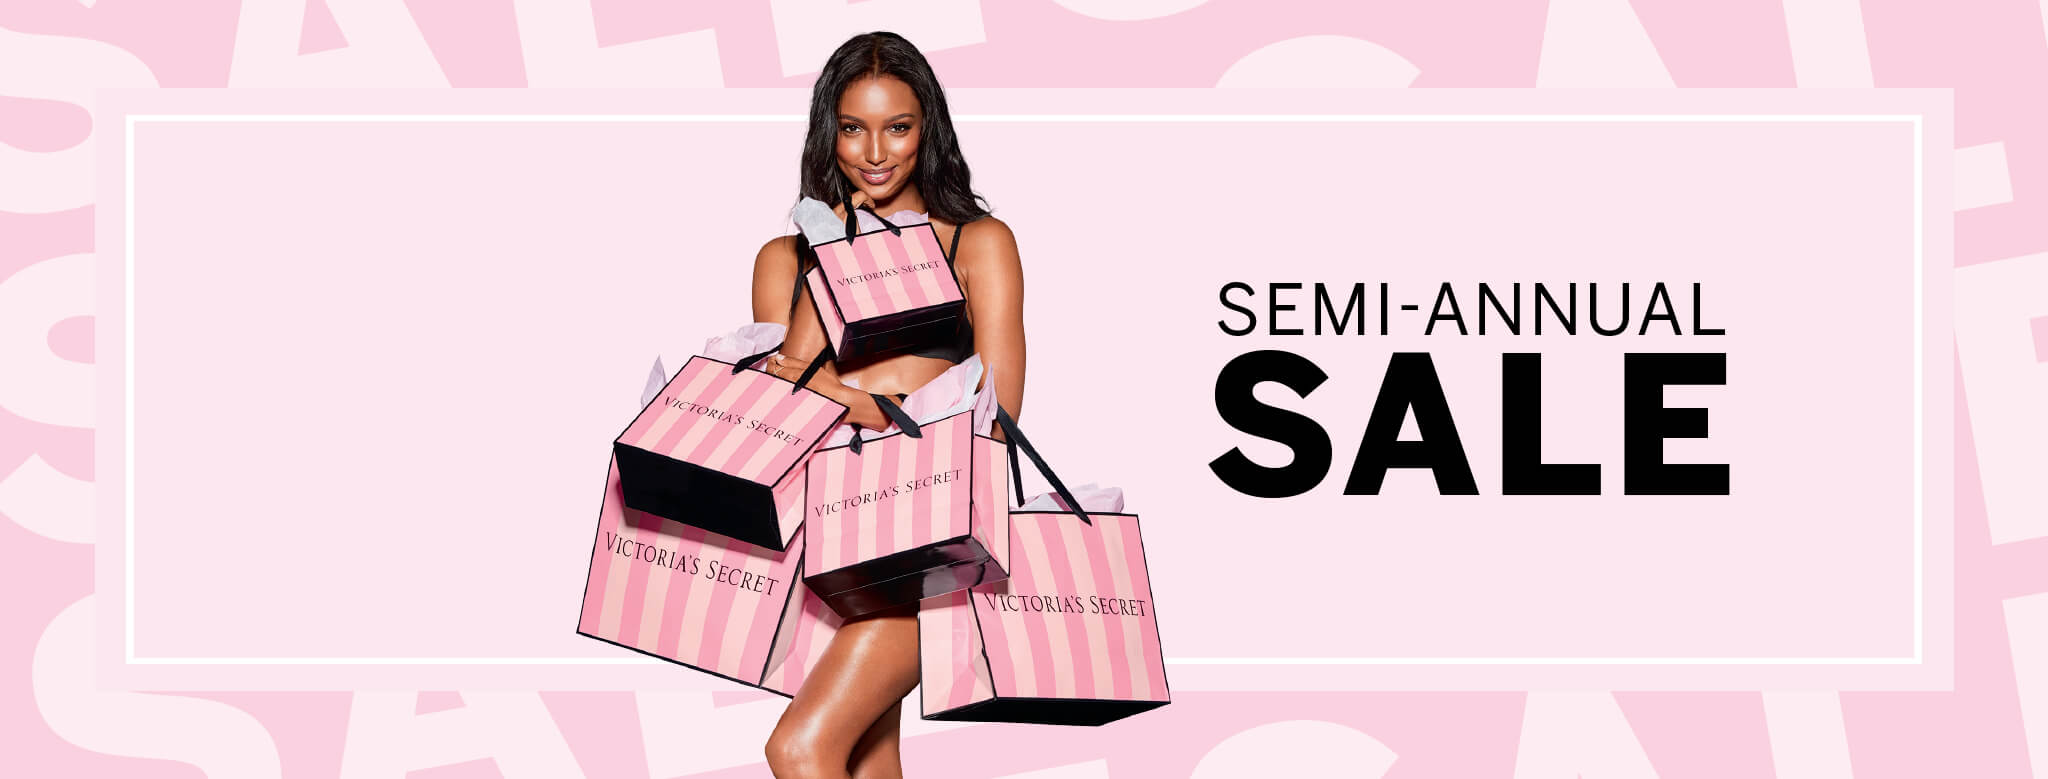 "Photo of a woman holding several Victoria's Secret Bags with the text ""Semi Annual Sale"" alongside her."